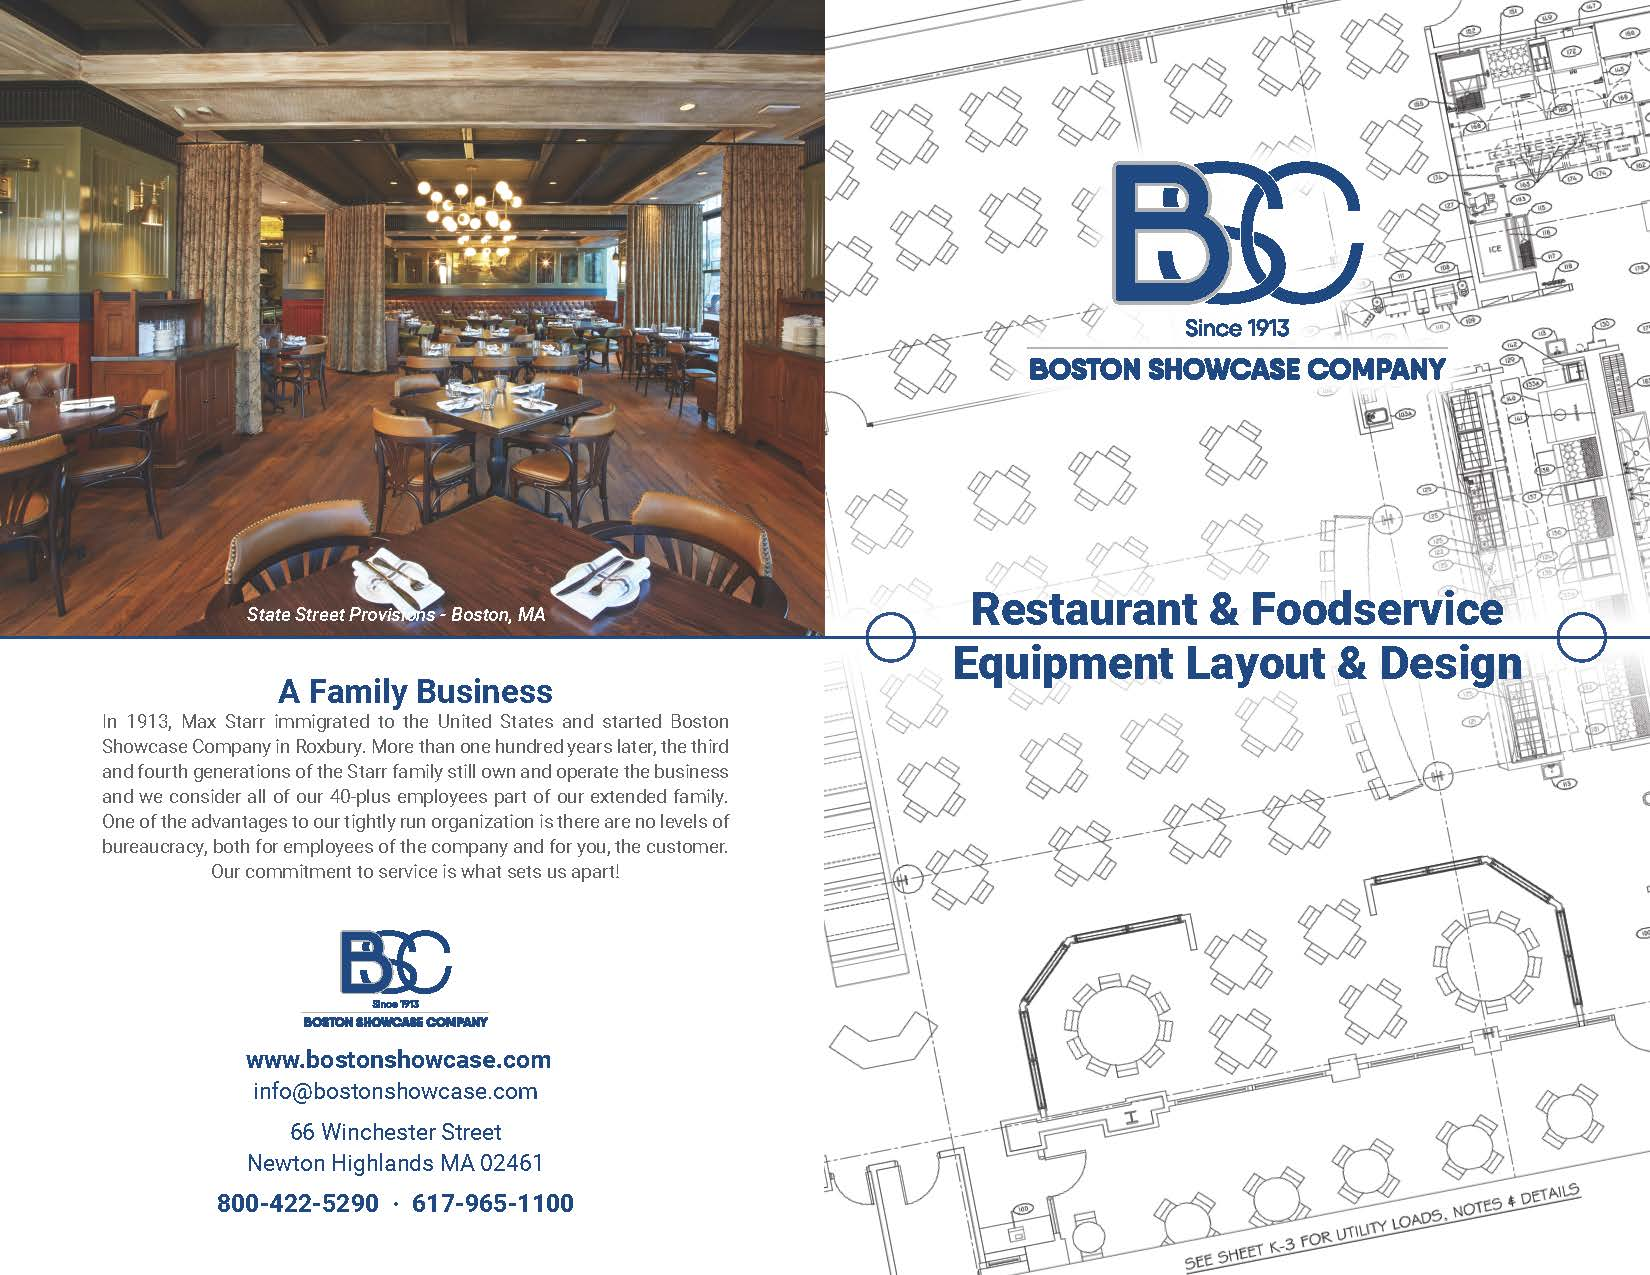 Restaurant And Foodservice Equipment Layout Design